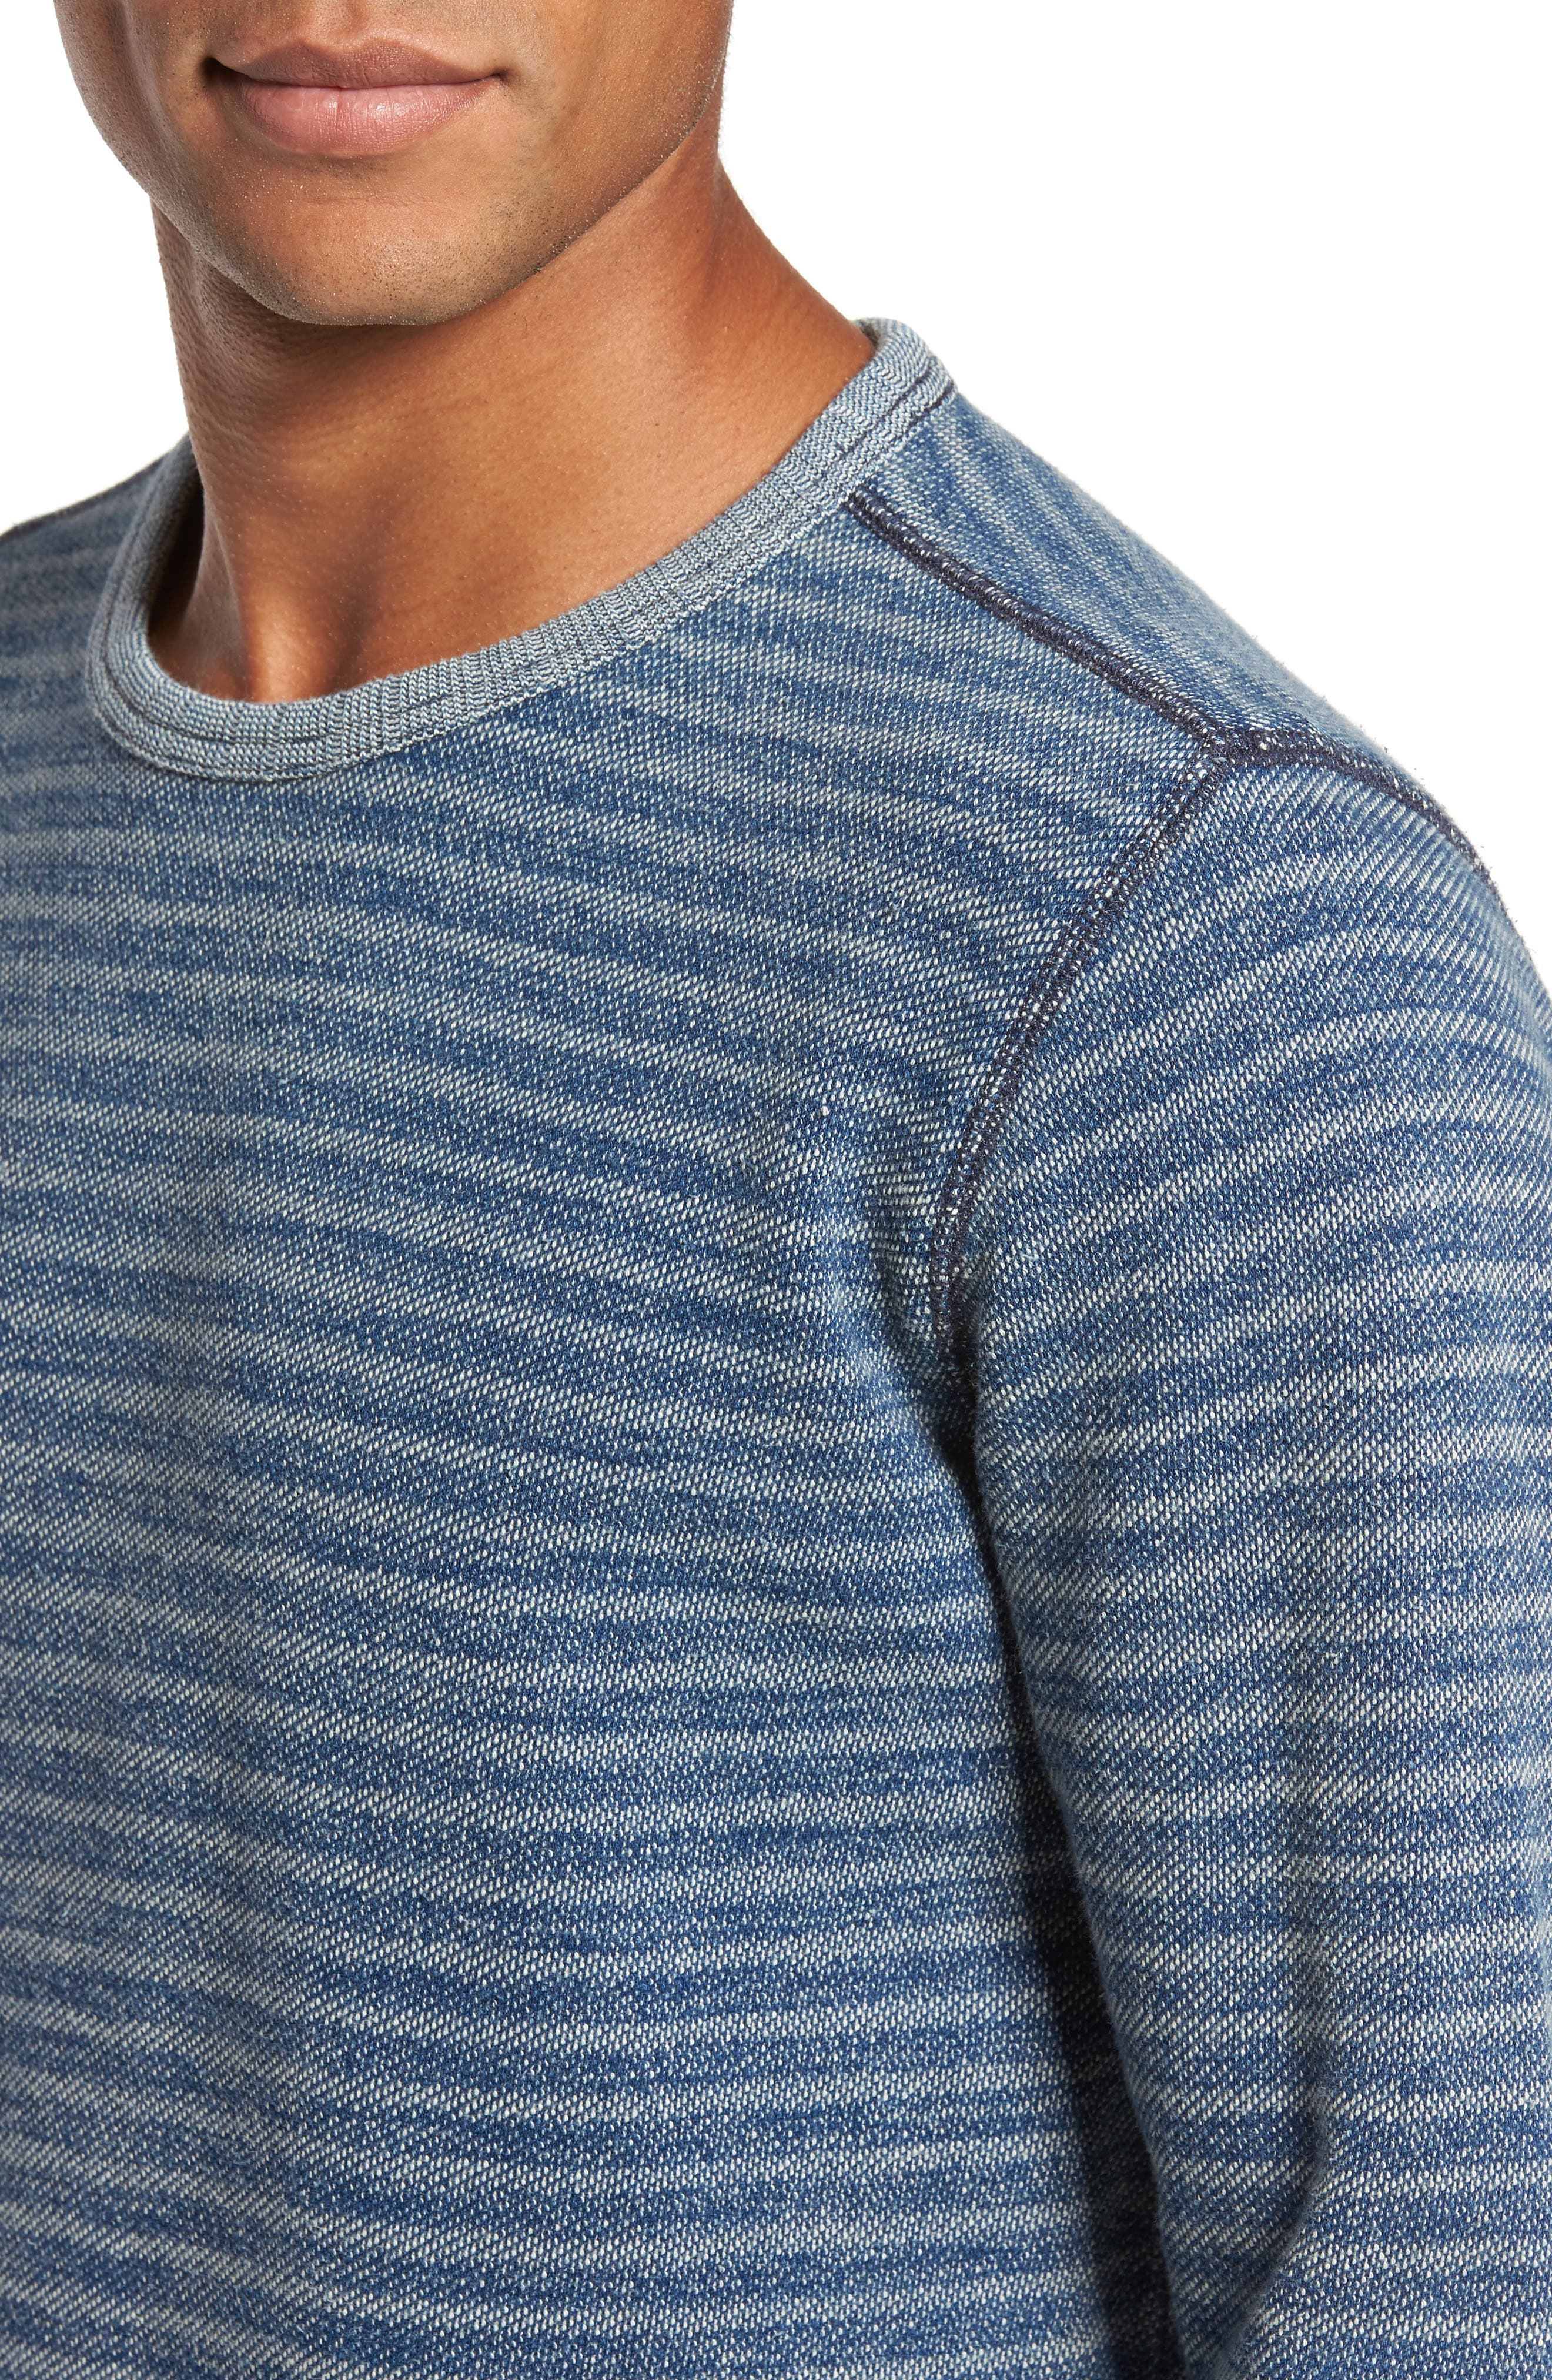 Stripe Crewneck Sweatshirt,                             Alternate thumbnail 4, color,                             402